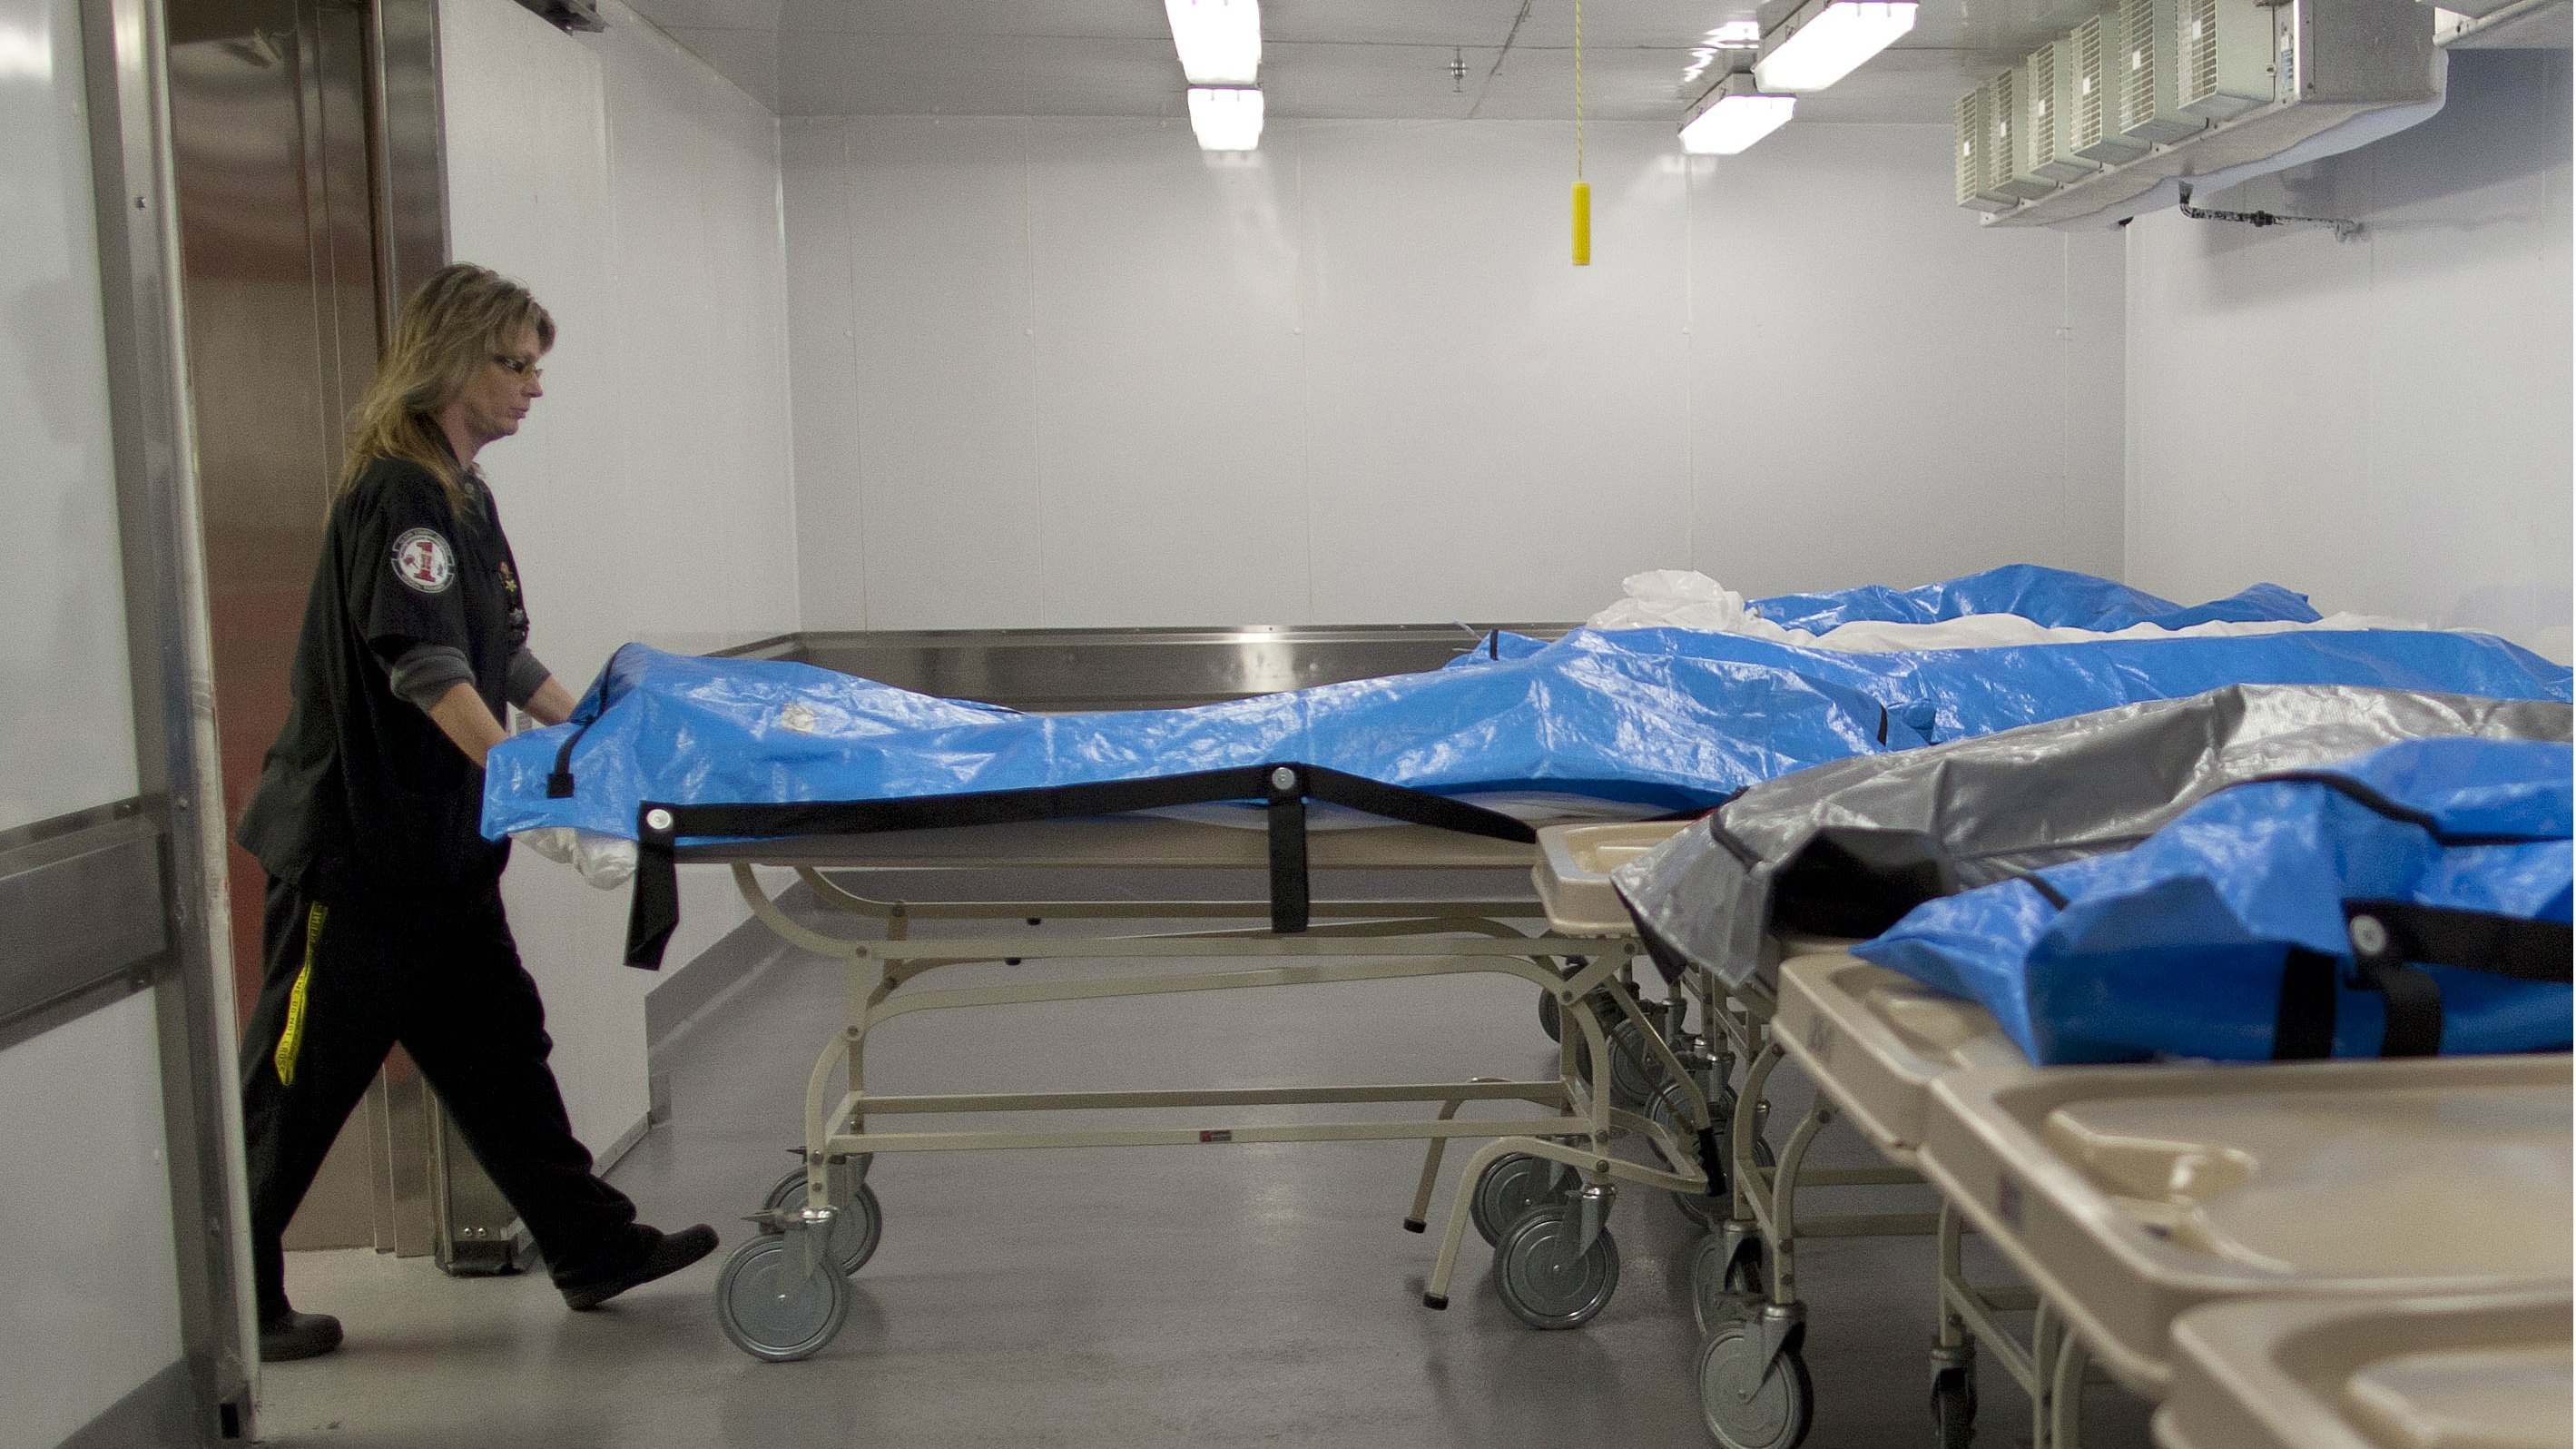 Forensic assistant Sue Miele returns a corpse to cold storage after taking x-rays of the body to help determine cause of death, Thursday, Sept. 29, 2011, at the Clark County Coroner's office in Las Vegas. The coroner's office investigates about 3,500 of the14,000 people who die each year in and around Las Vegas.The official whose name goes on thousands of death certificates each year recently inked a deal with a the Discovery Channel for a series of TV episodes featuring the work of the Sin City coroner's office.